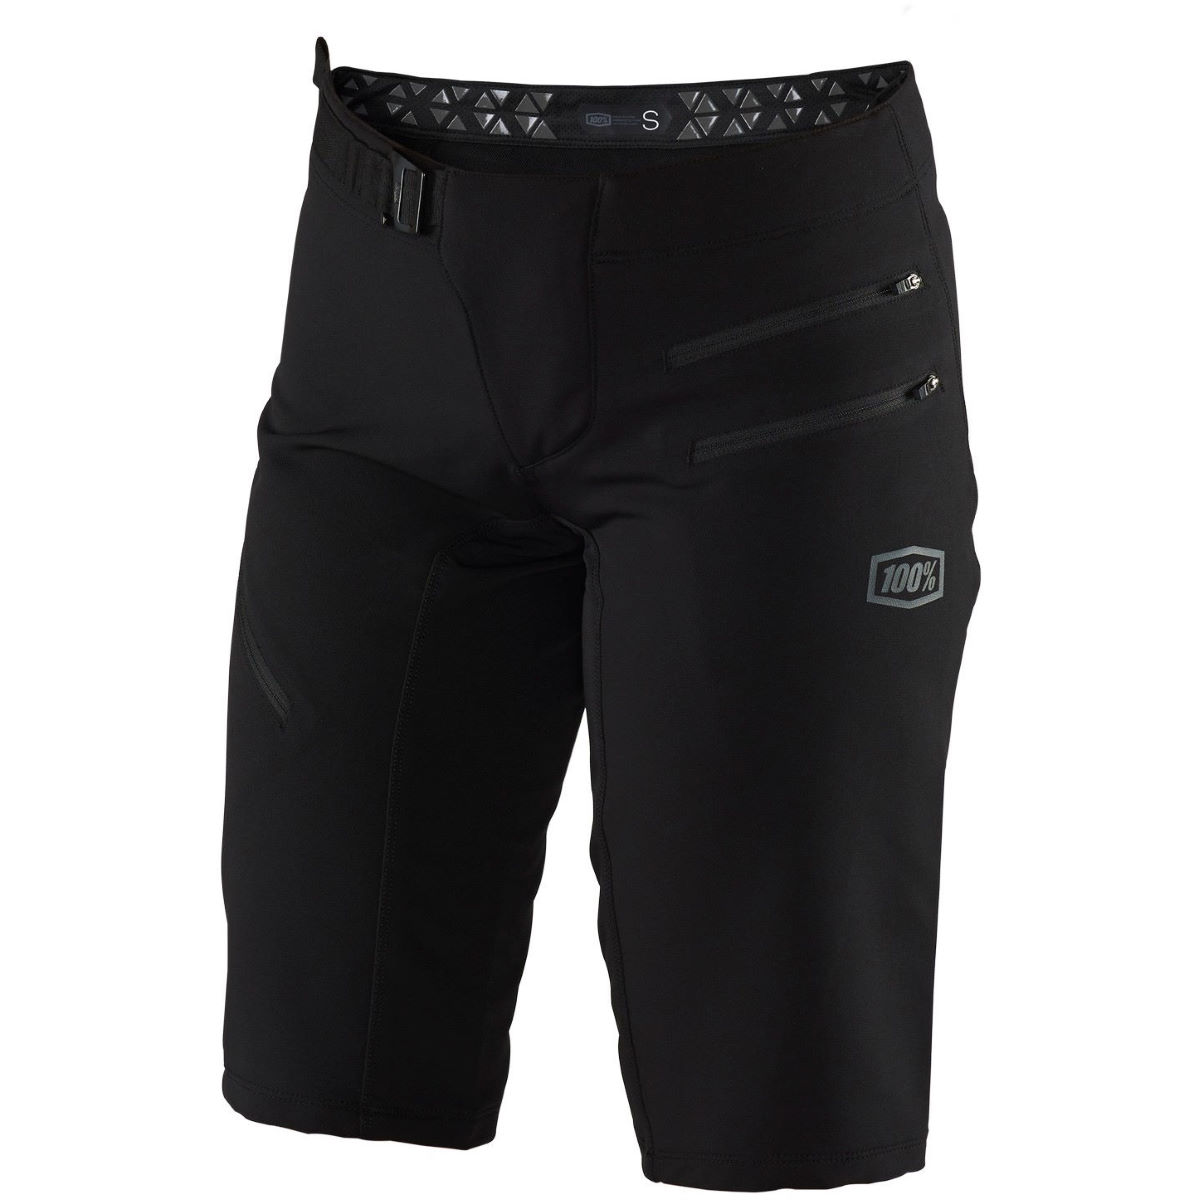 100% Womens Airmatic Shorts - Xl Black  Baggy Shorts